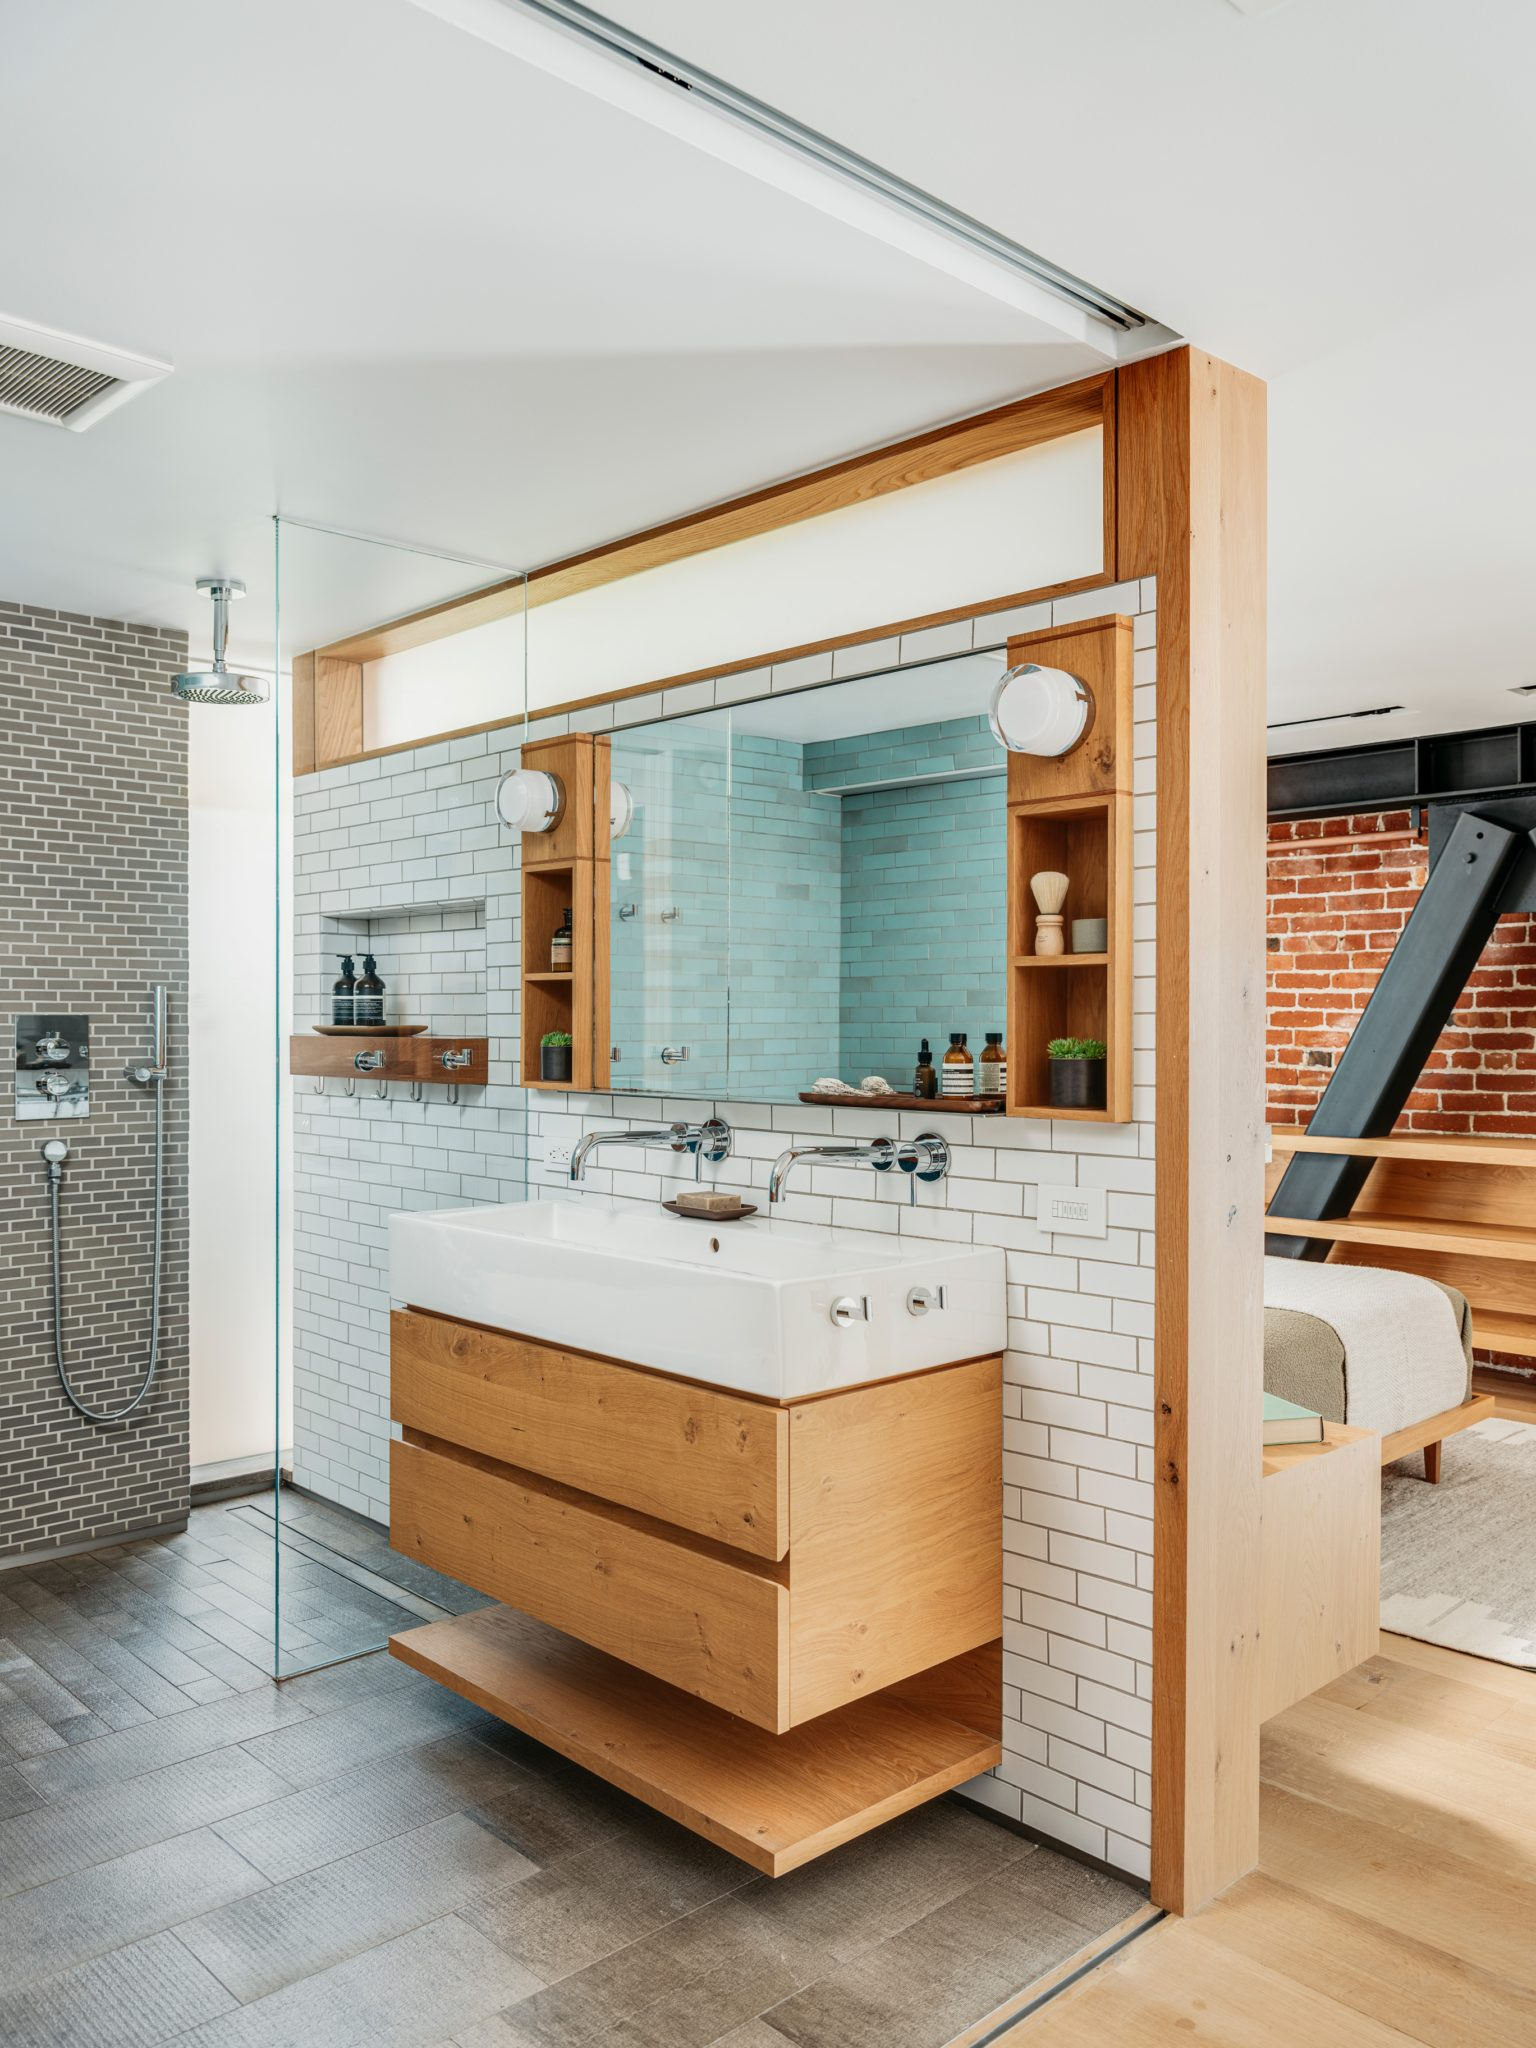 Heath Ceramics tile decorates the walls. The custom vanity was crafted from white oak, the sink is from La Cava, and the faucets are from Blu Bathworks. The curbless shower is an impactful aspect of the design.